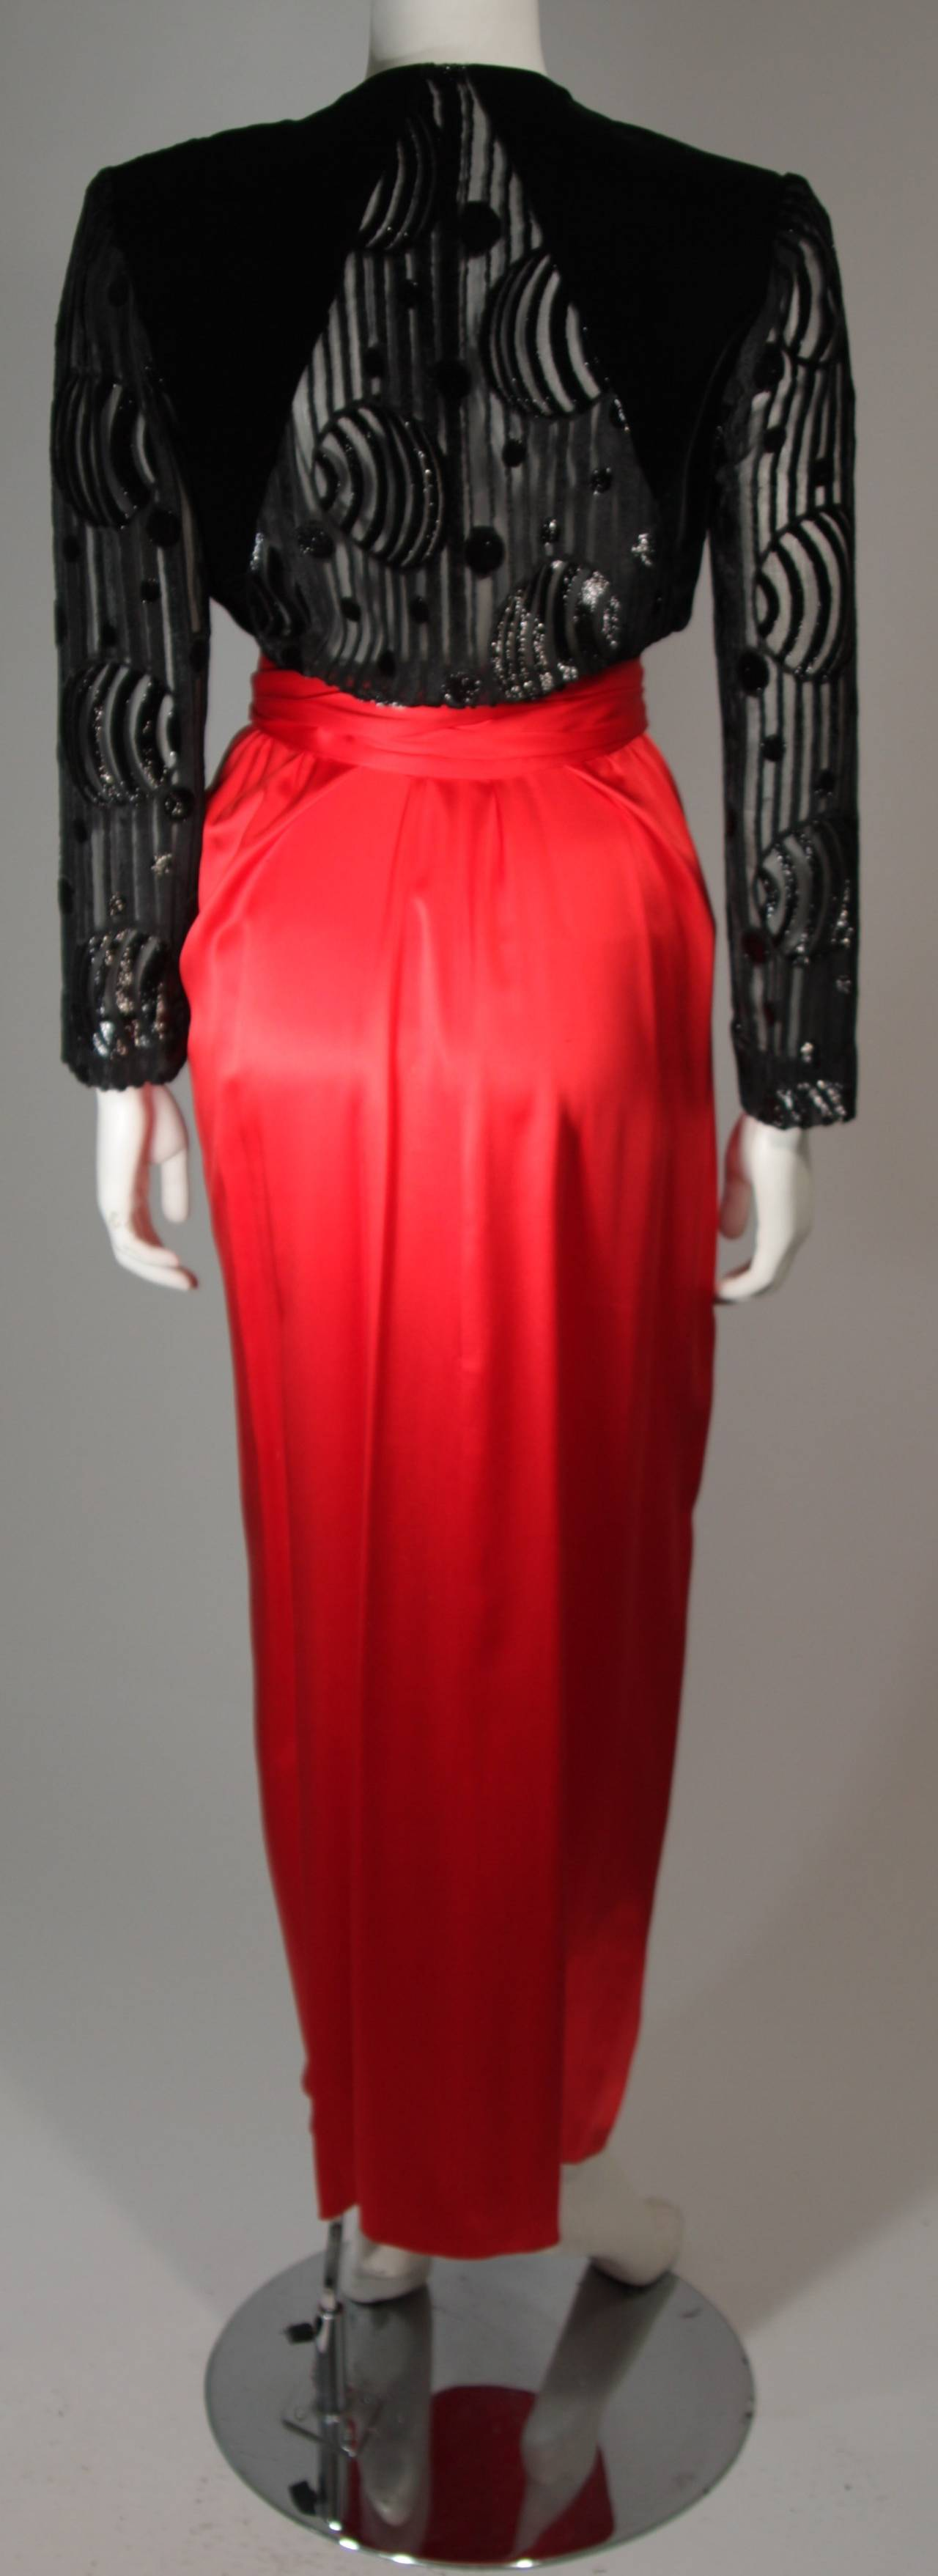 Adele Simpson Burnout Black Velvet and Red Silk Gown Size Small For Sale 3